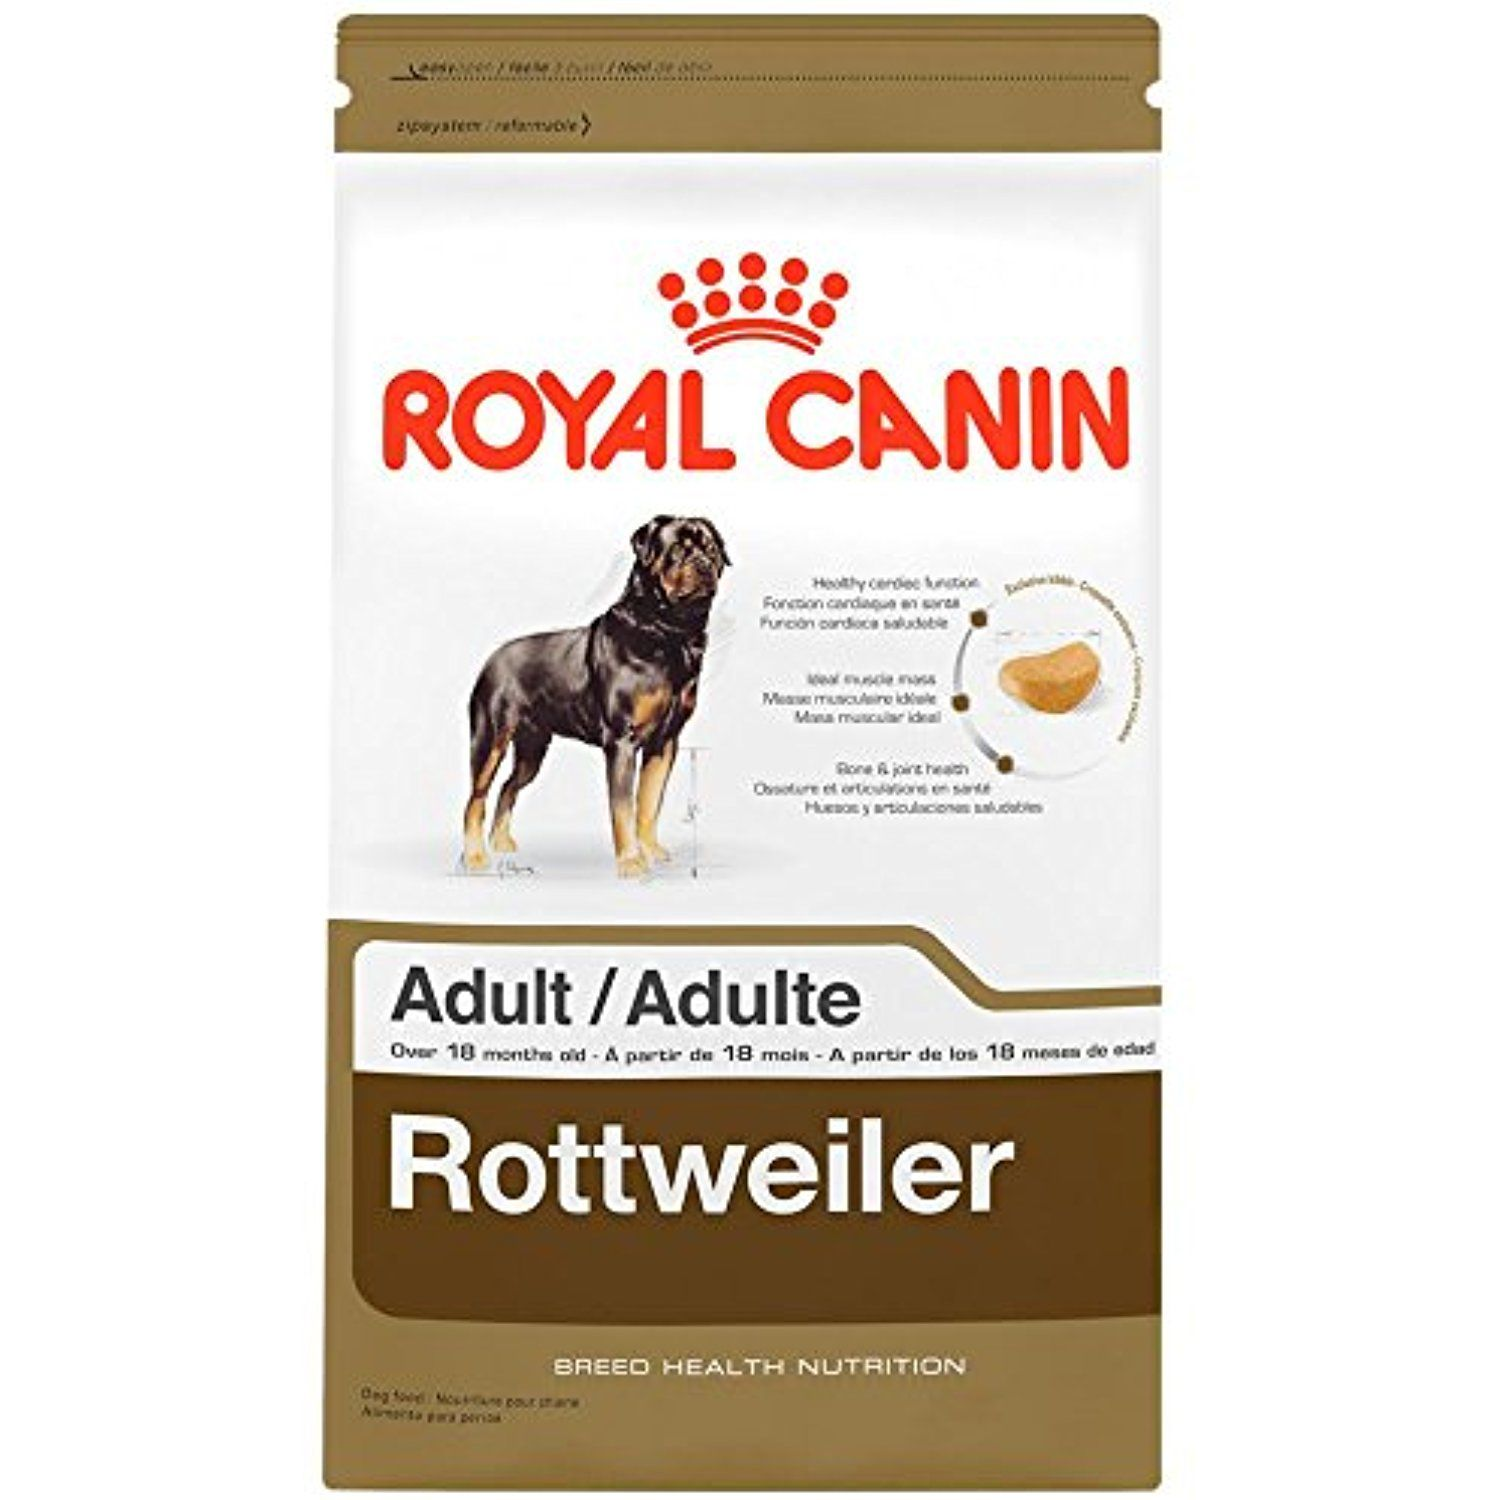 Royal Canin Breed Health Nutrition Rottweiler Adult30 Lb You Can Click Image To Review More Details T Dry Dog Food Royal Canin Dog Food Dog Food Recipes